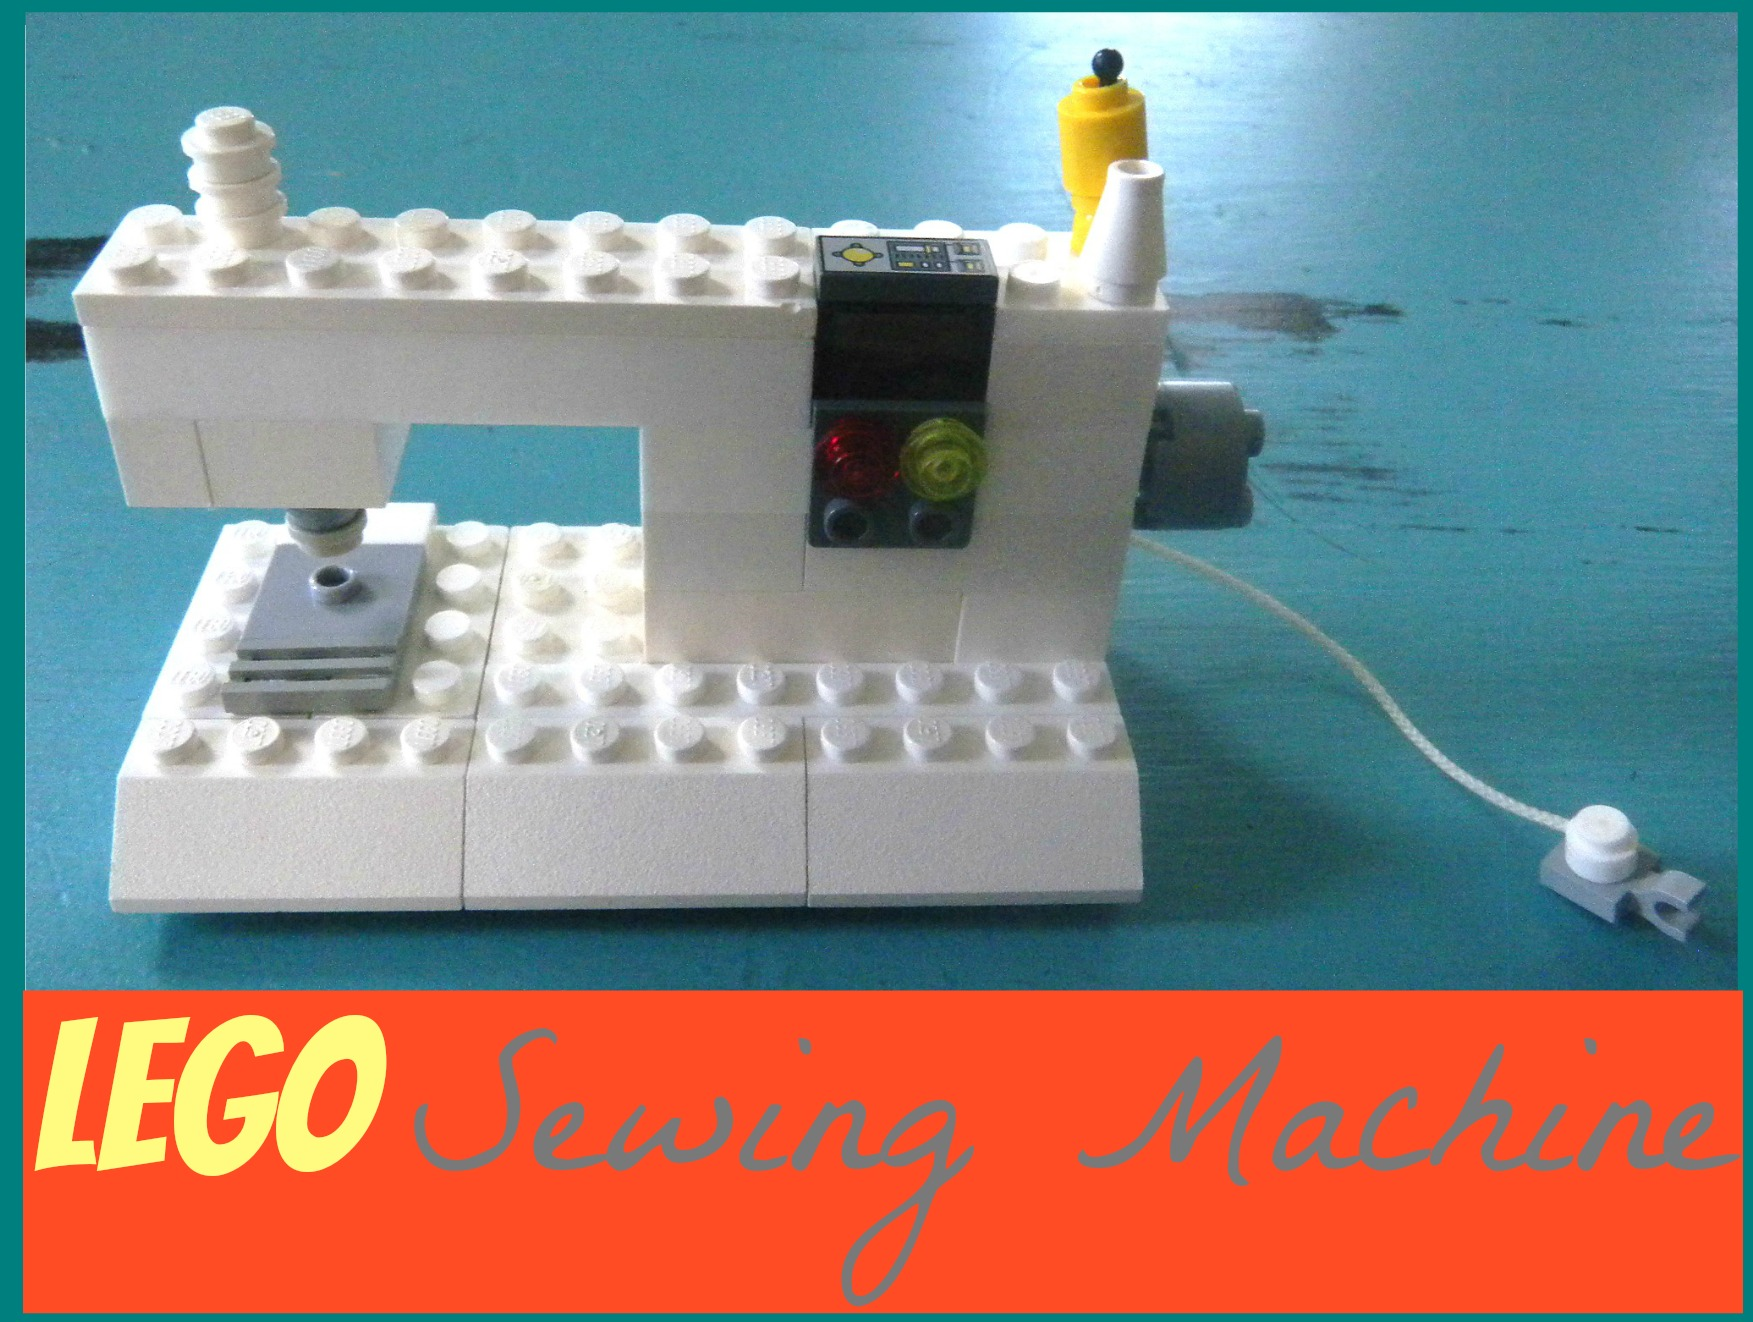 sewingmachinecover LEGO Sewing Machine